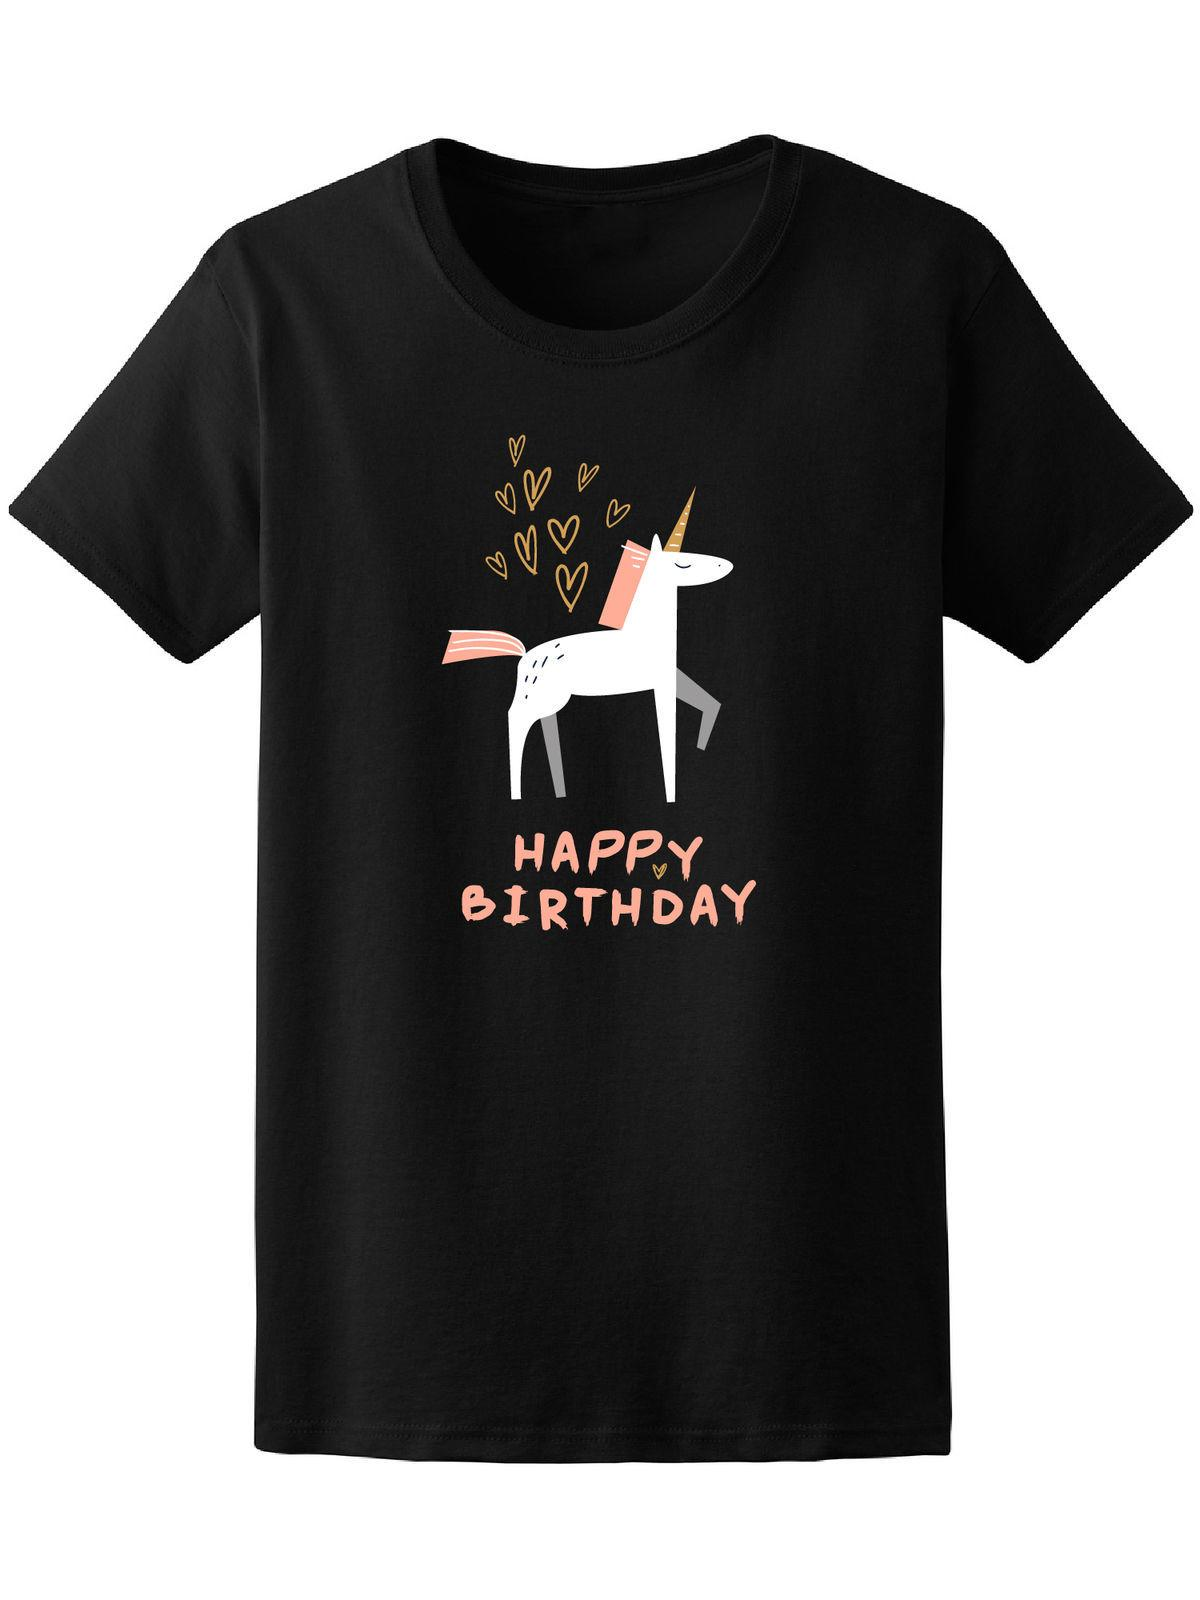 Happy Birthday Unicorn Hearts Tee Image By Shutterstock Novelty Cool Tops Men Short Sleeve Tshirt Canada 2019 From Carenthusiast CAD 1337